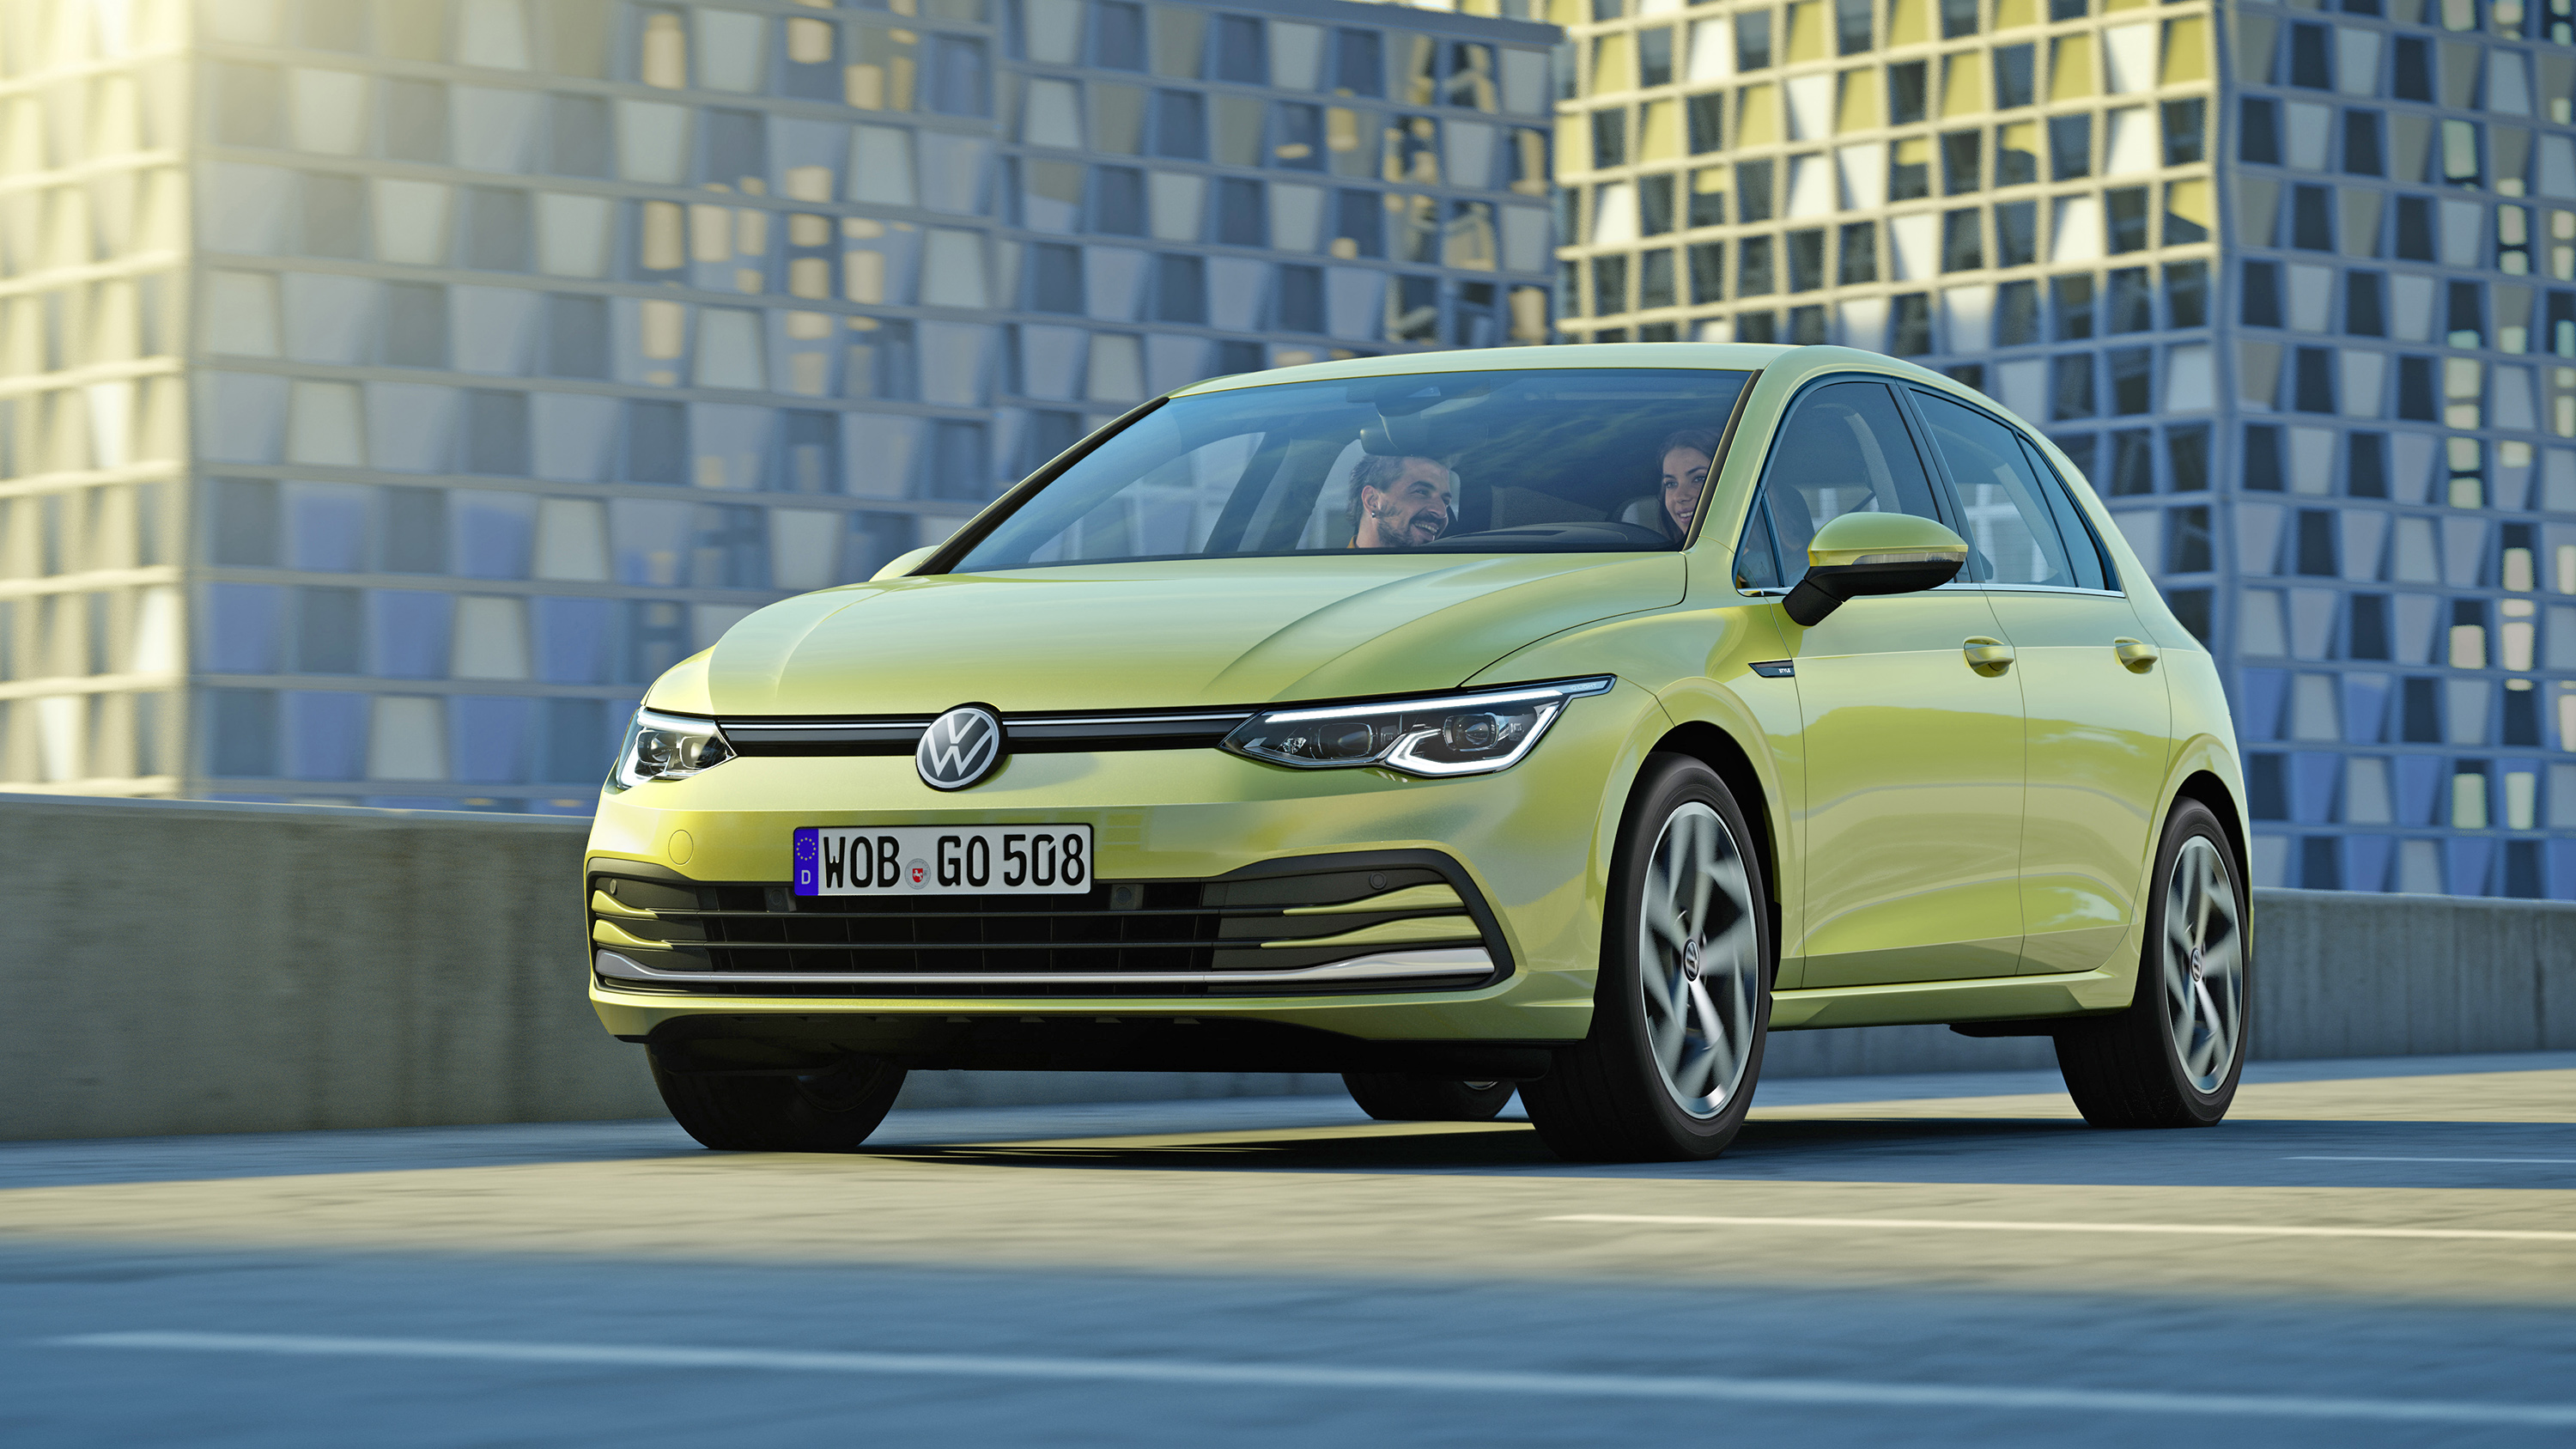 2020 Volkswagen Golf Prices Specifications And Engine Details Buyacar